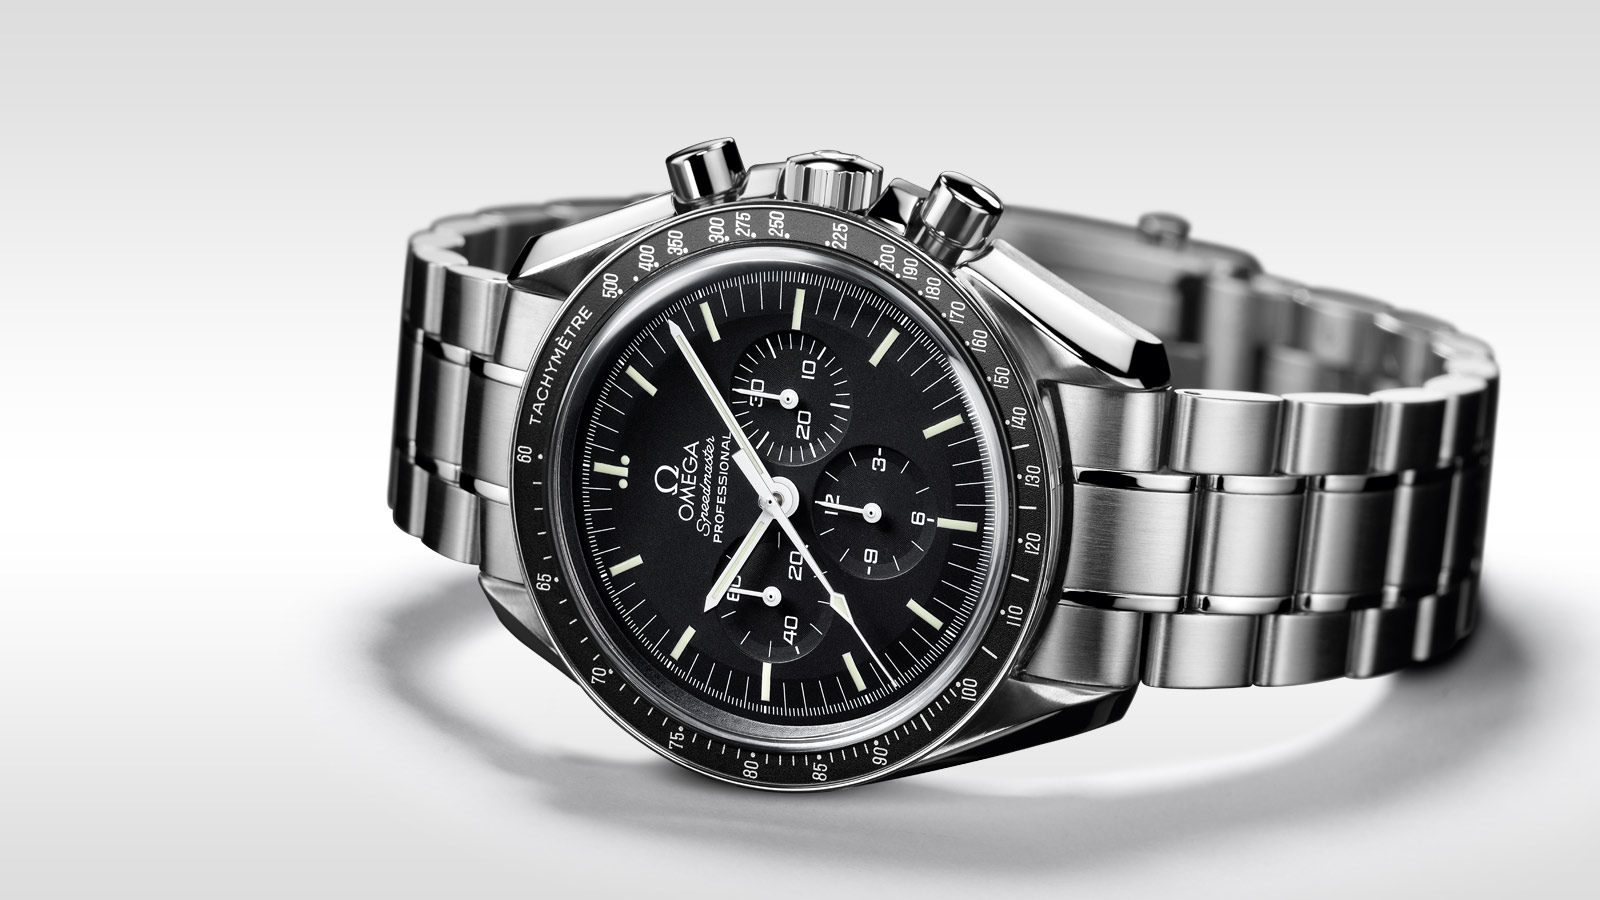 Speedmaster Moonwatch Moonwatch Professional Chronograph 42 mm - 311.30.42.30.01.005 - View 4